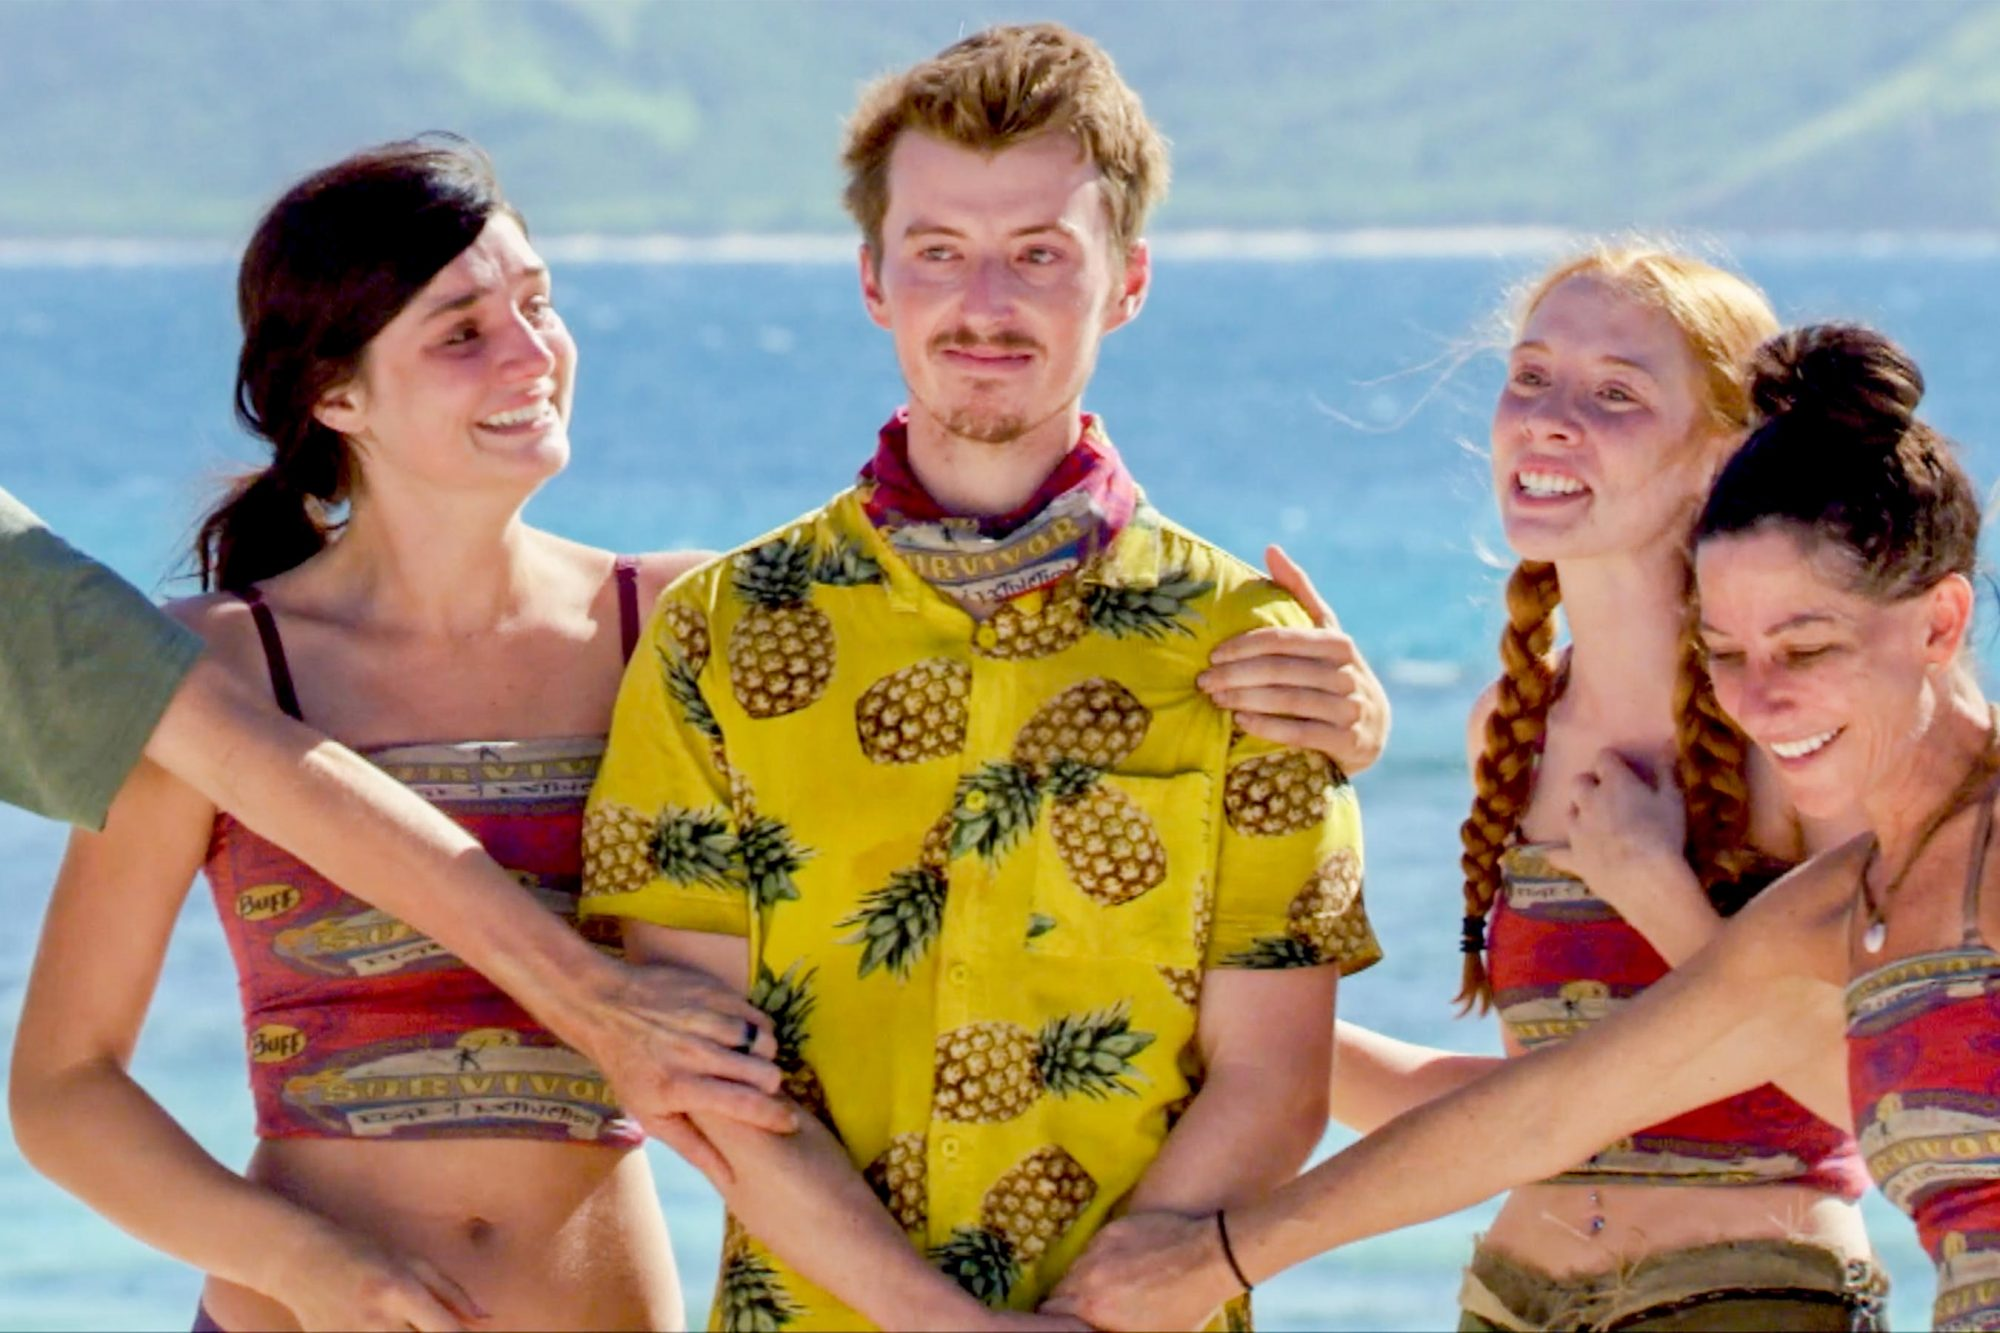 """Awkward"" - Ron Clark, Lauren O'Connell, Gavin Whitson, Victoria Baamonde and Julie Rosenberg on the twelfth episode of SURVIVOR: Edge of Extinction airing, Wednesday, May 1st (8:00-9:00 PM, ET/PT) on the CBS Television Network. Photo: Screen Grab/CBS Entertainment ©2019 CBS Broadcasting, Inc. All Rights Reserved."